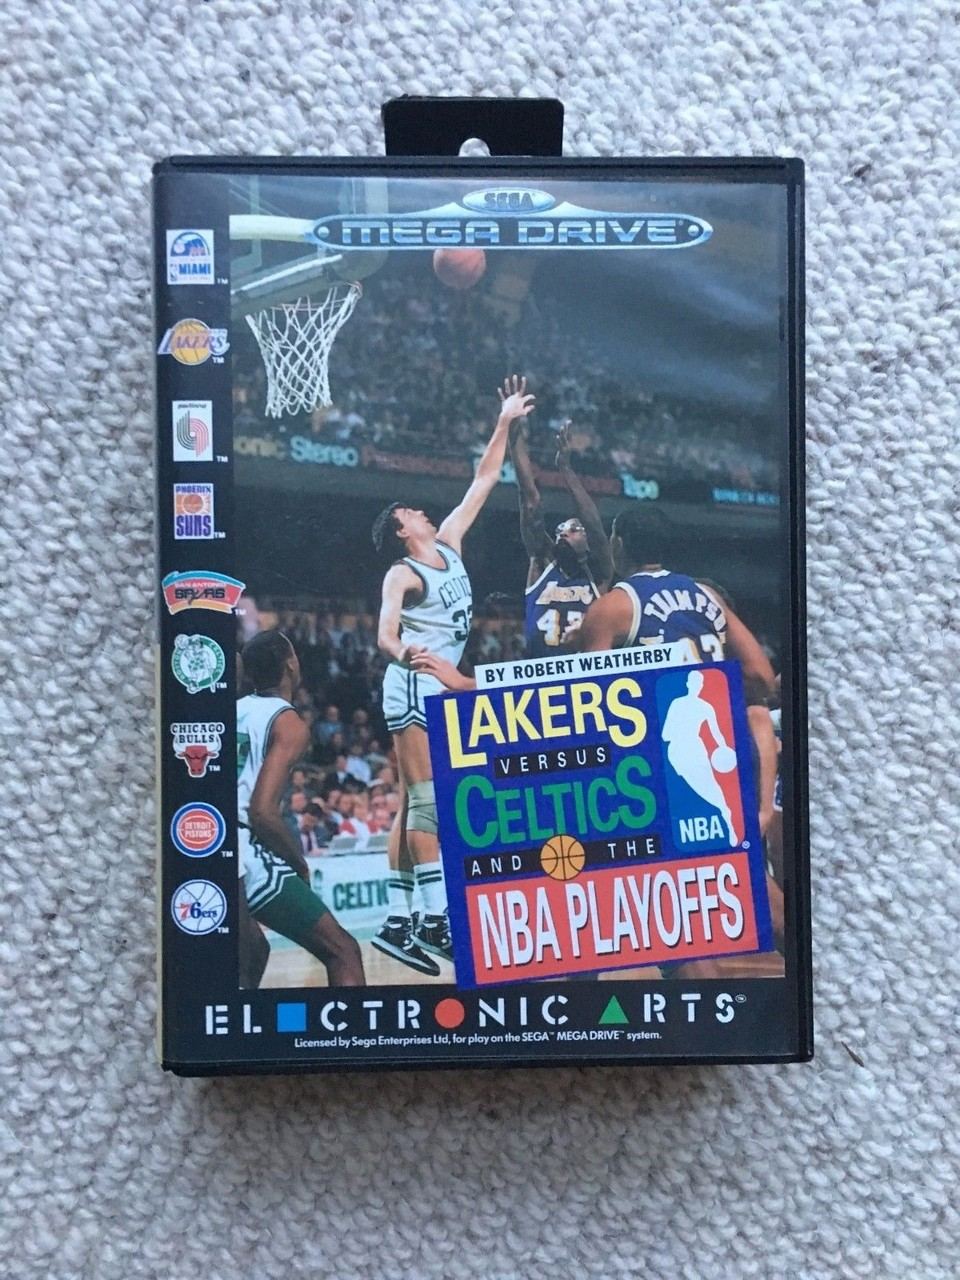 Lakers vs Celtics and the NBA Playoffs (Bildquelle: eBay-Nutzer damor99)